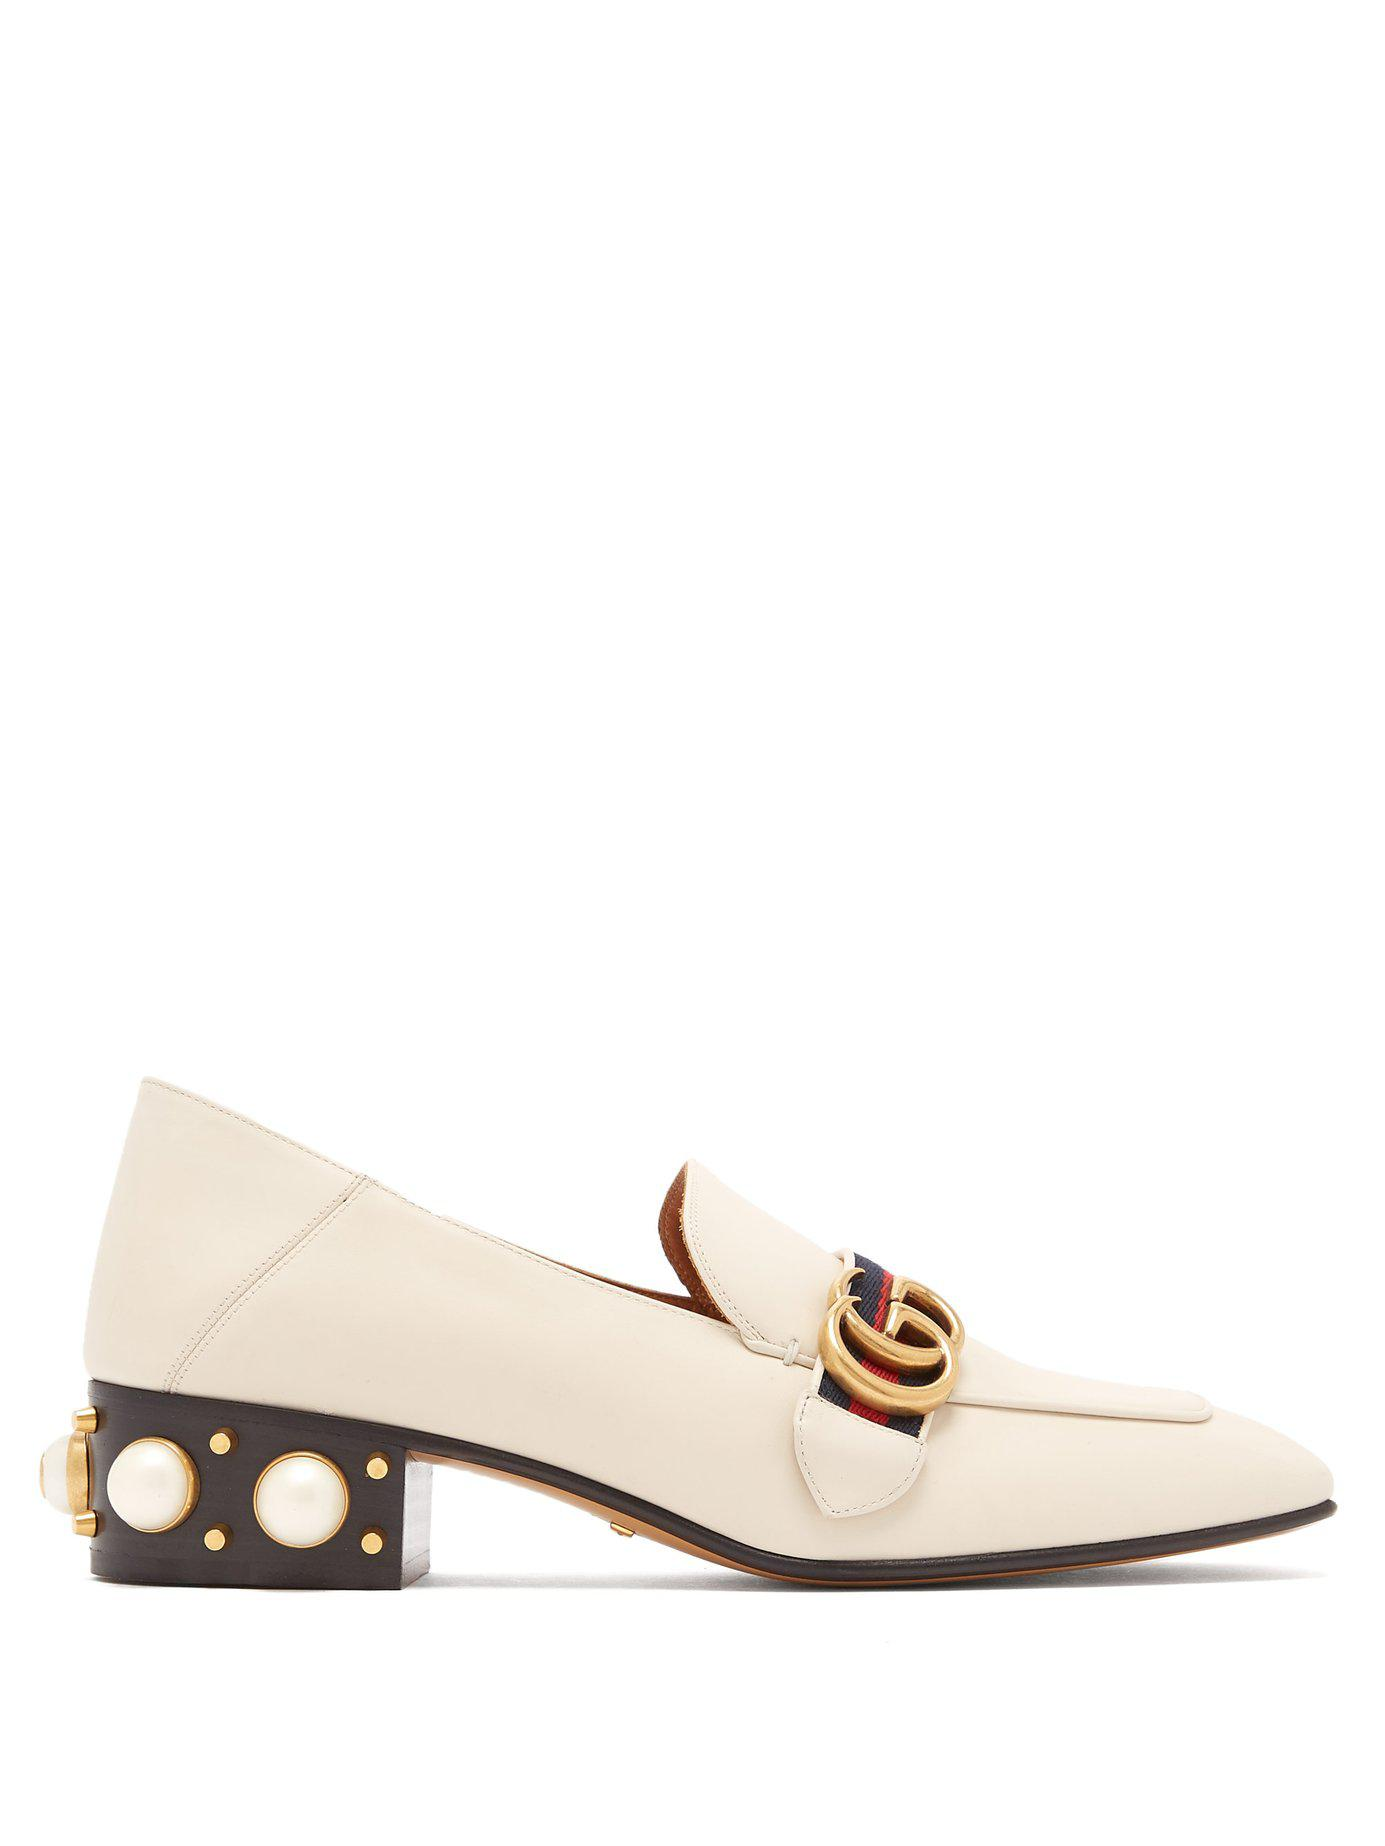 65f8175af5e Lyst - Gucci Peyton Pearl Embellished Leather Loafers in White